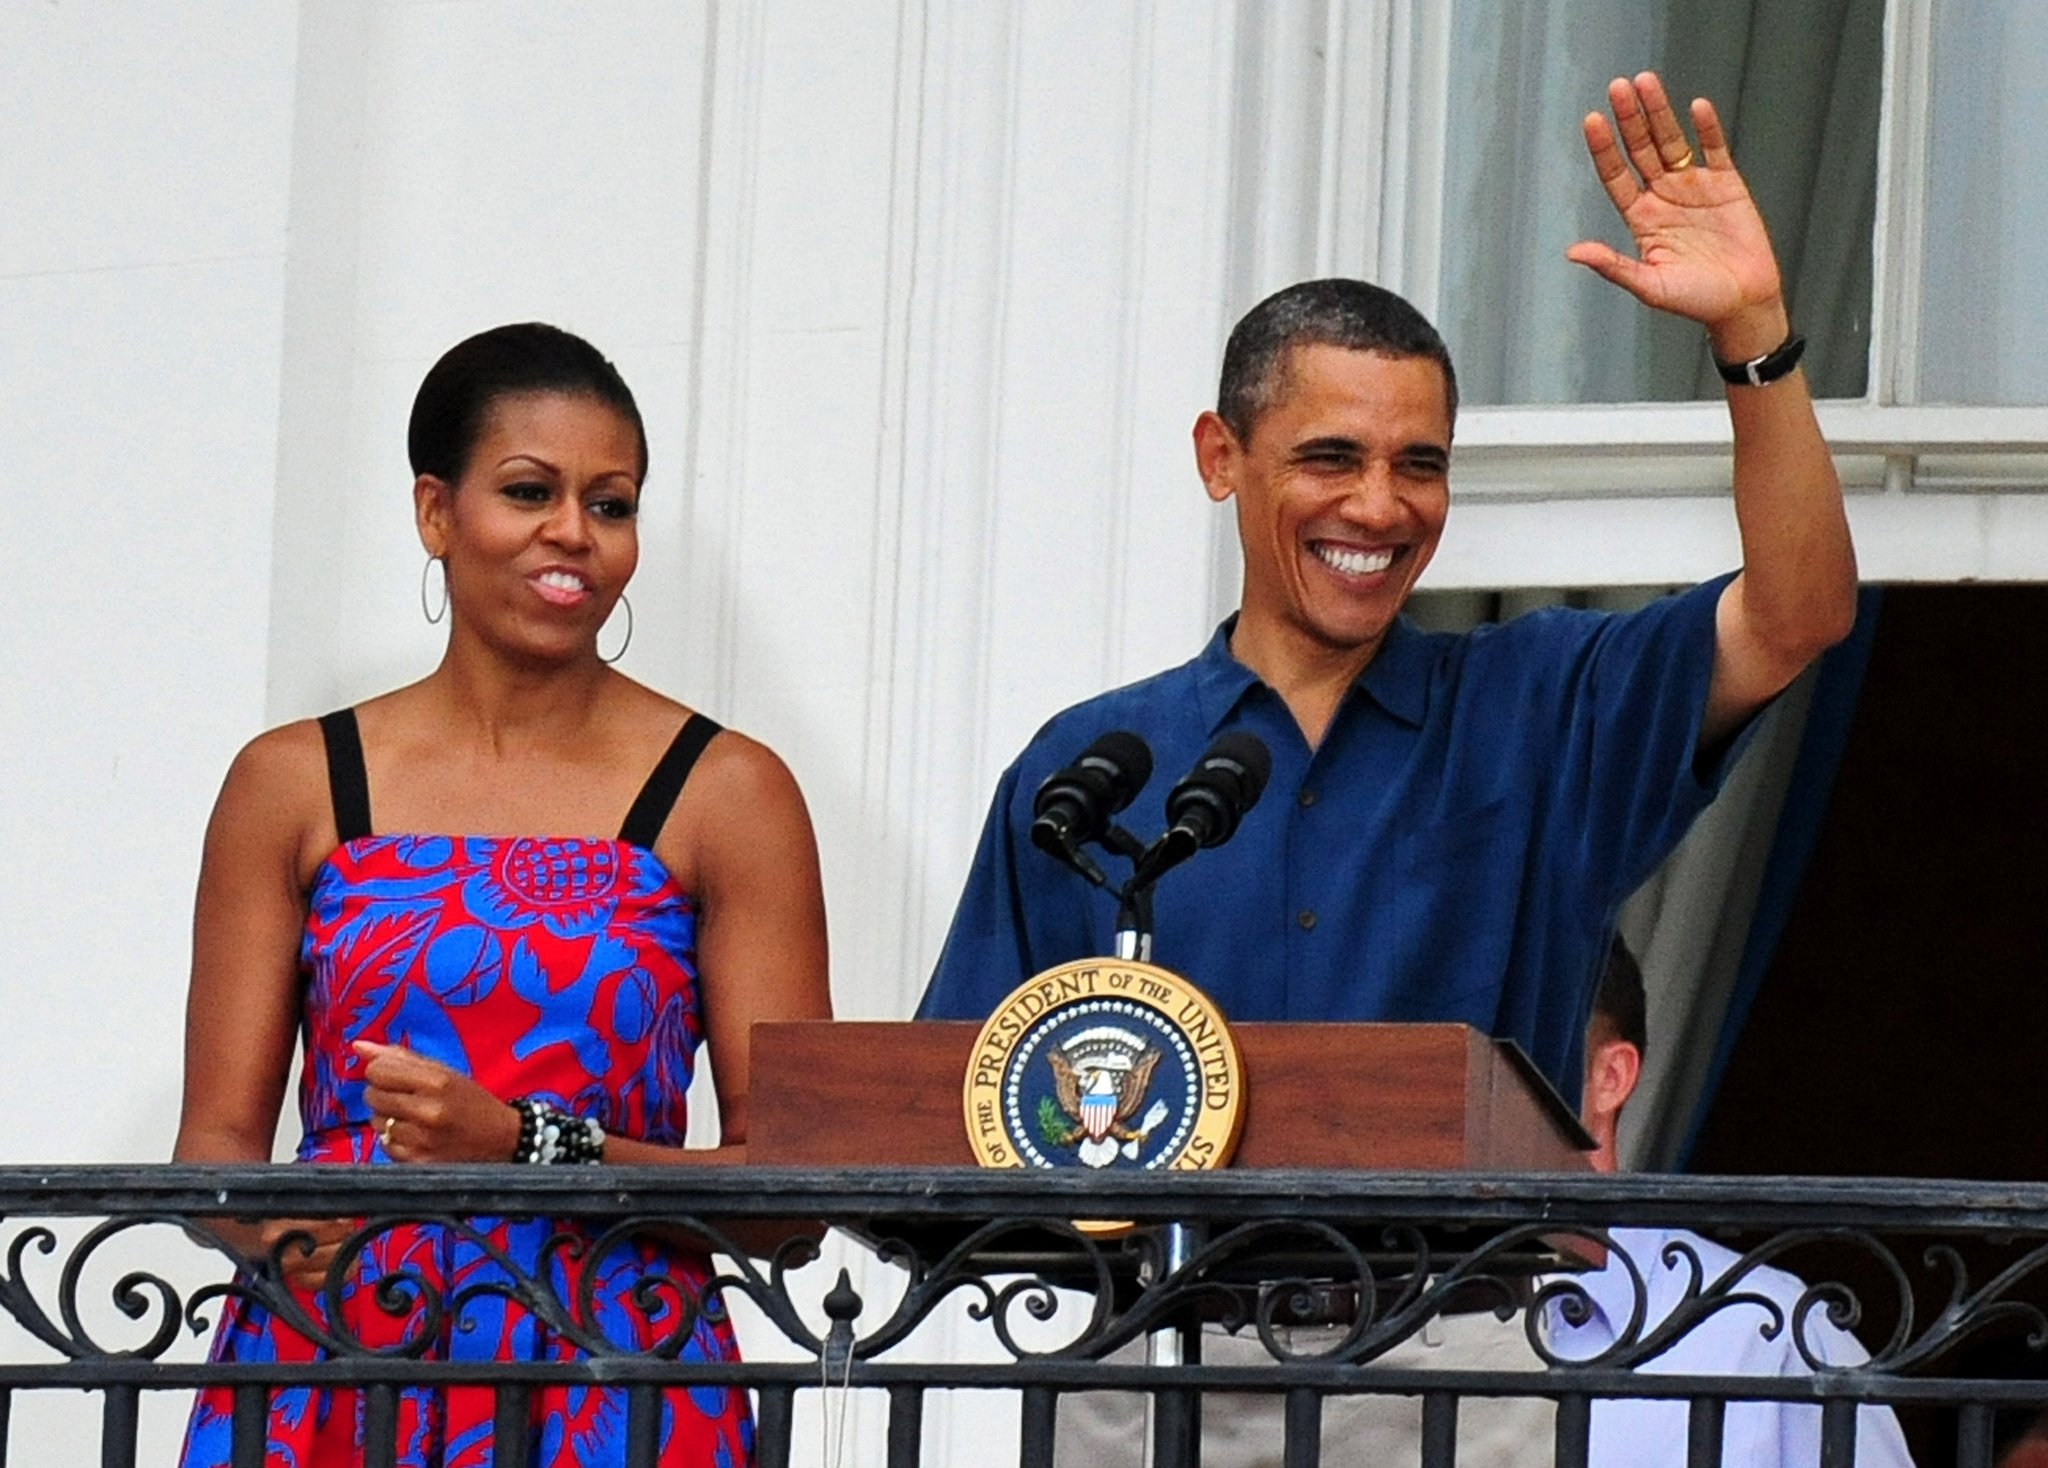 Michelle and Barack enjoyed themselves as the president greeted military families in 2011.